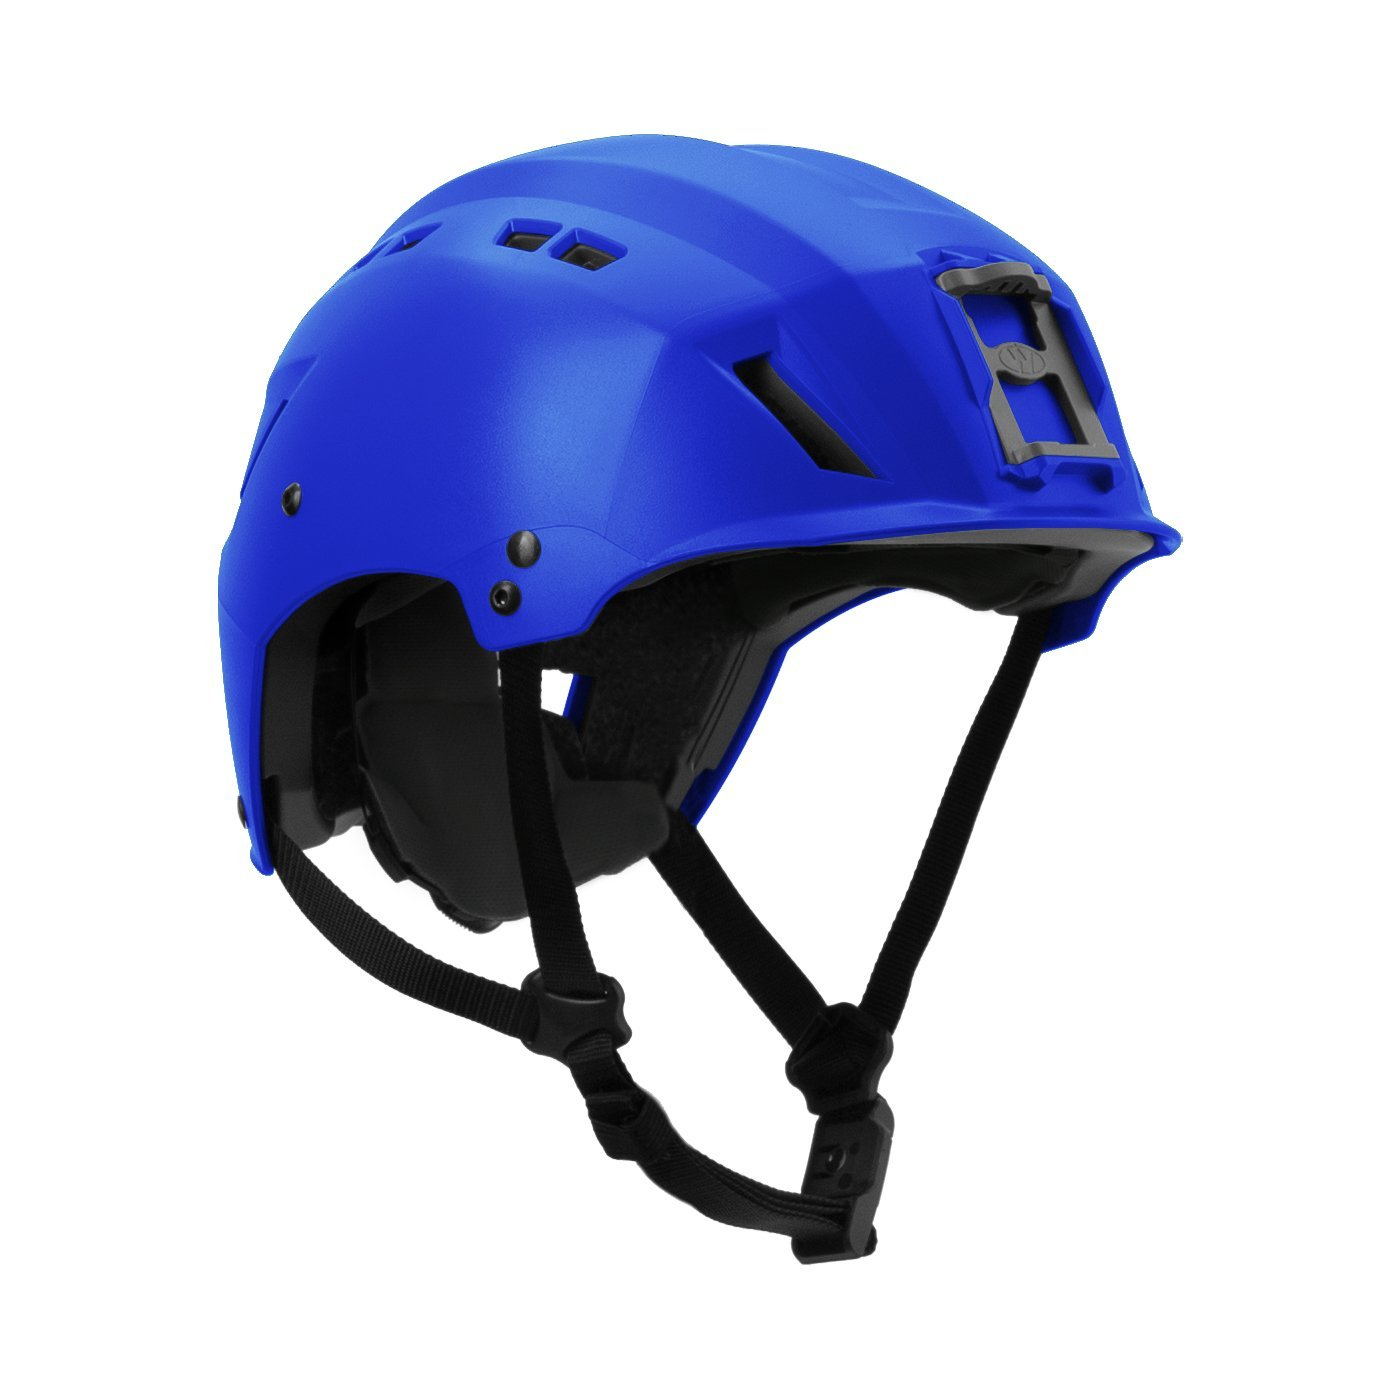 Team Wendy Helm EXFIL® SAR Backcountry Blau